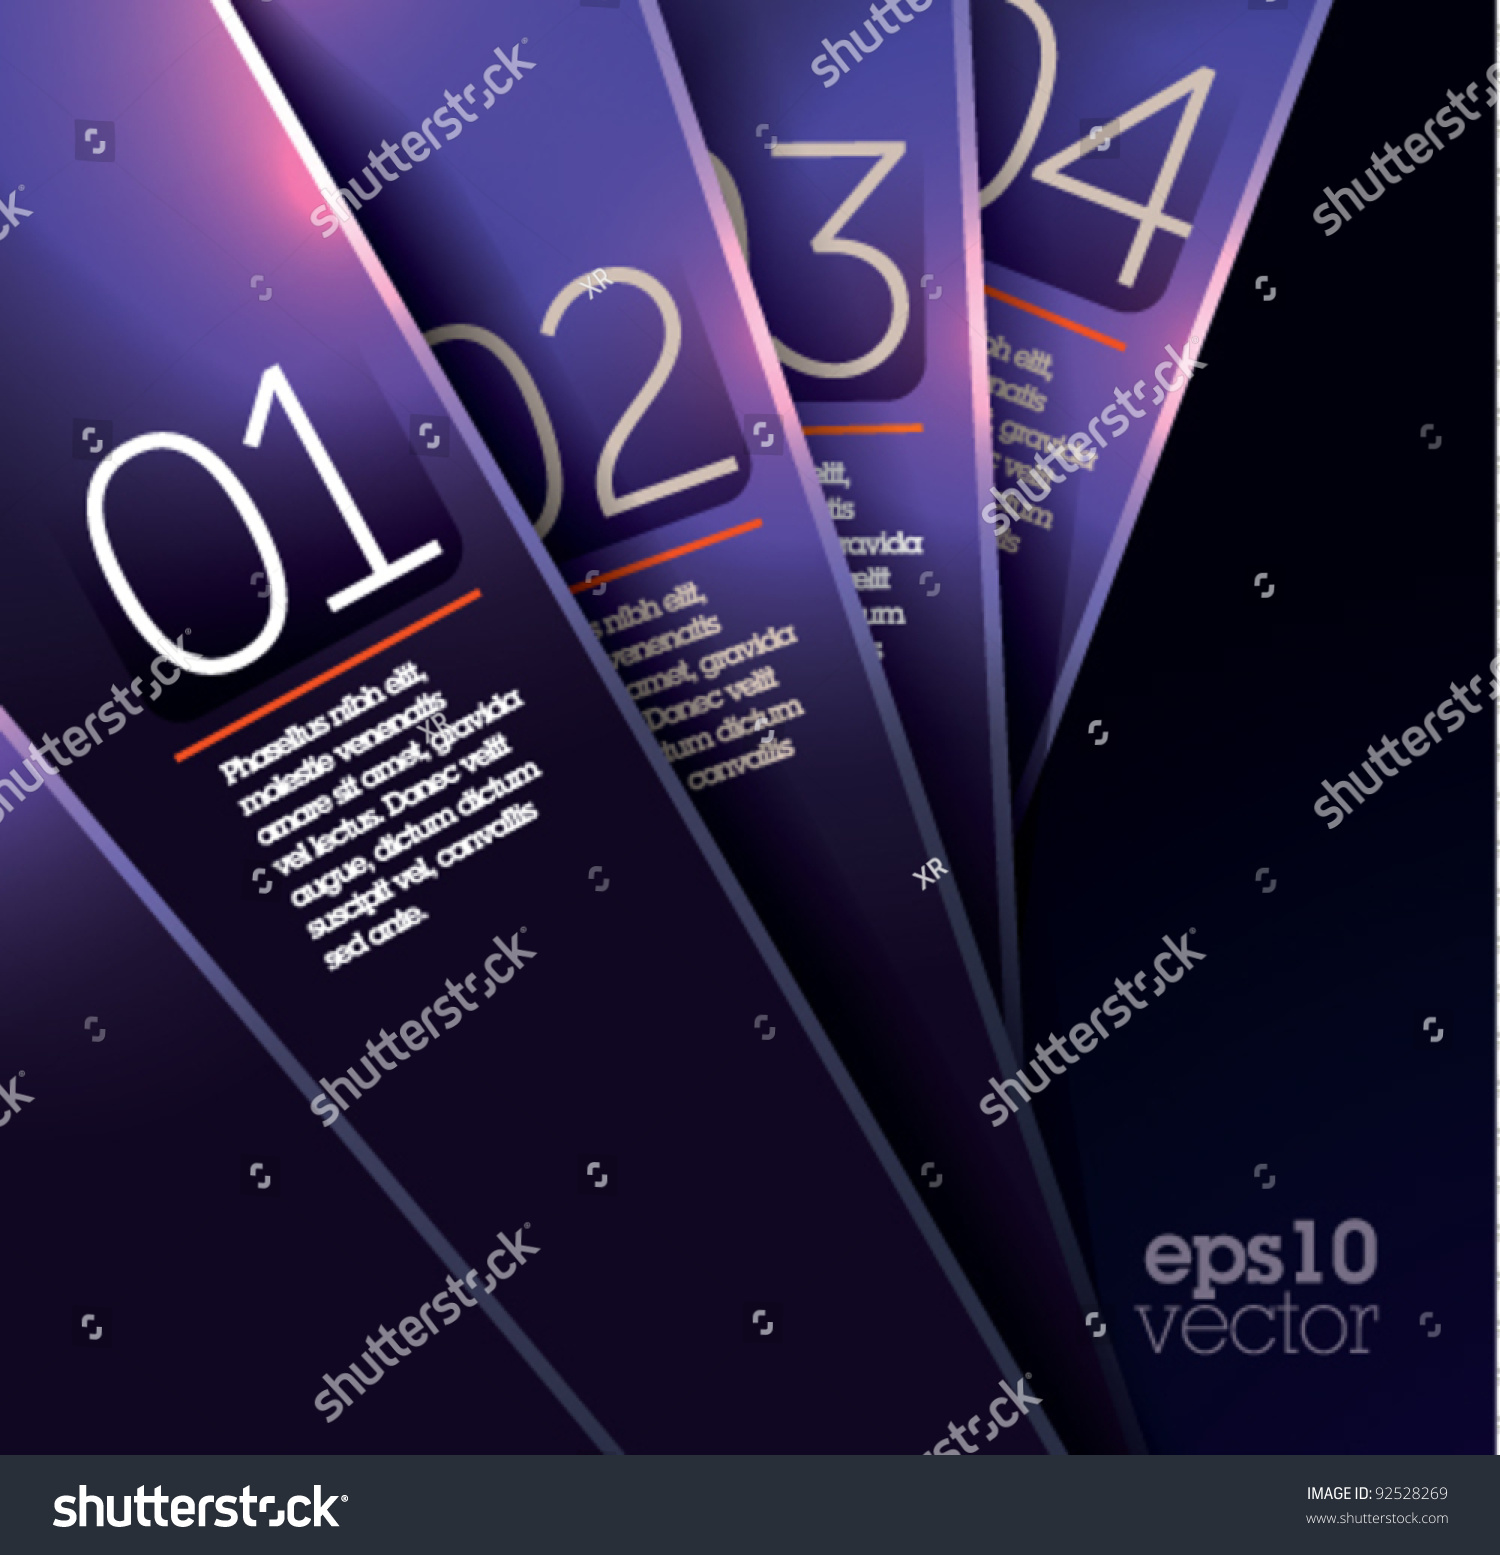 Fold Over Name Plate Template Stock Vector Design Template Shiny Violet Plates Graphic